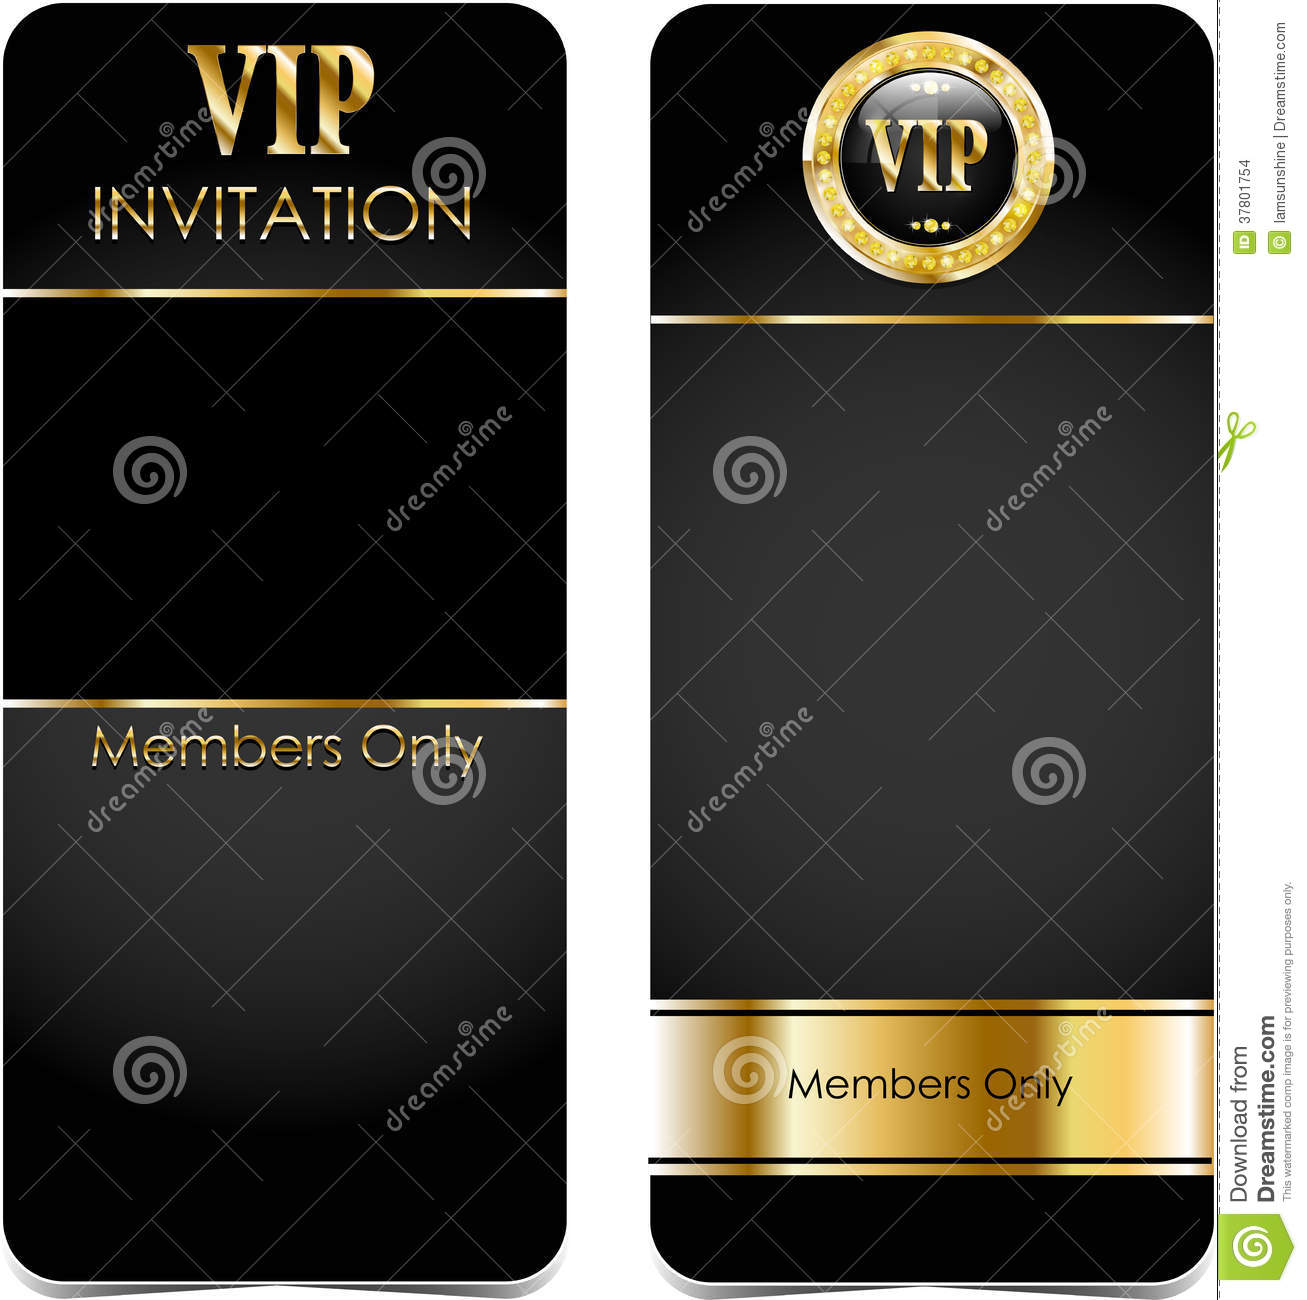 Premium Vip Cards Stock Images  Image 37801754